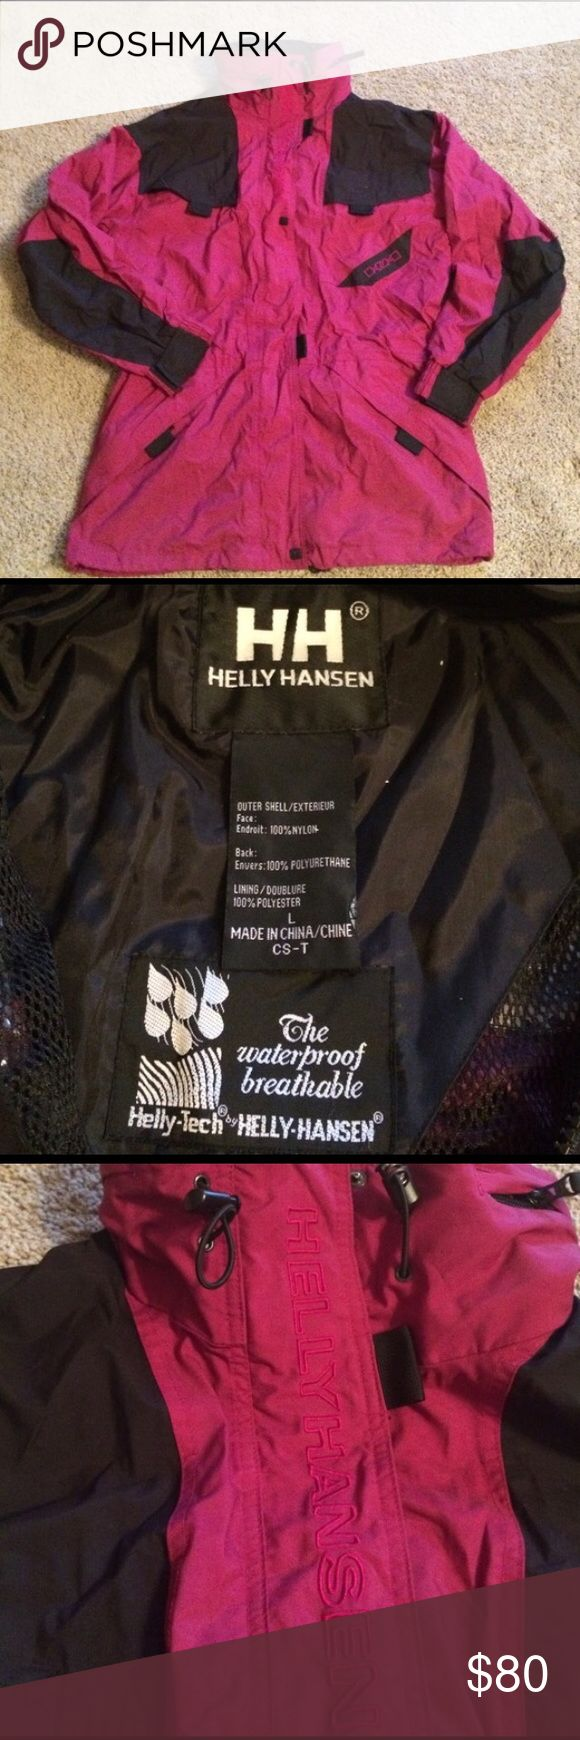 "Helly Hansen ski jacket Hidden hood with cinching around the waist.  Measures 23"" from pit to pit and 33"" long from top of shoulders to bottom of jacket. Helly Hansen Jackets & Coats"